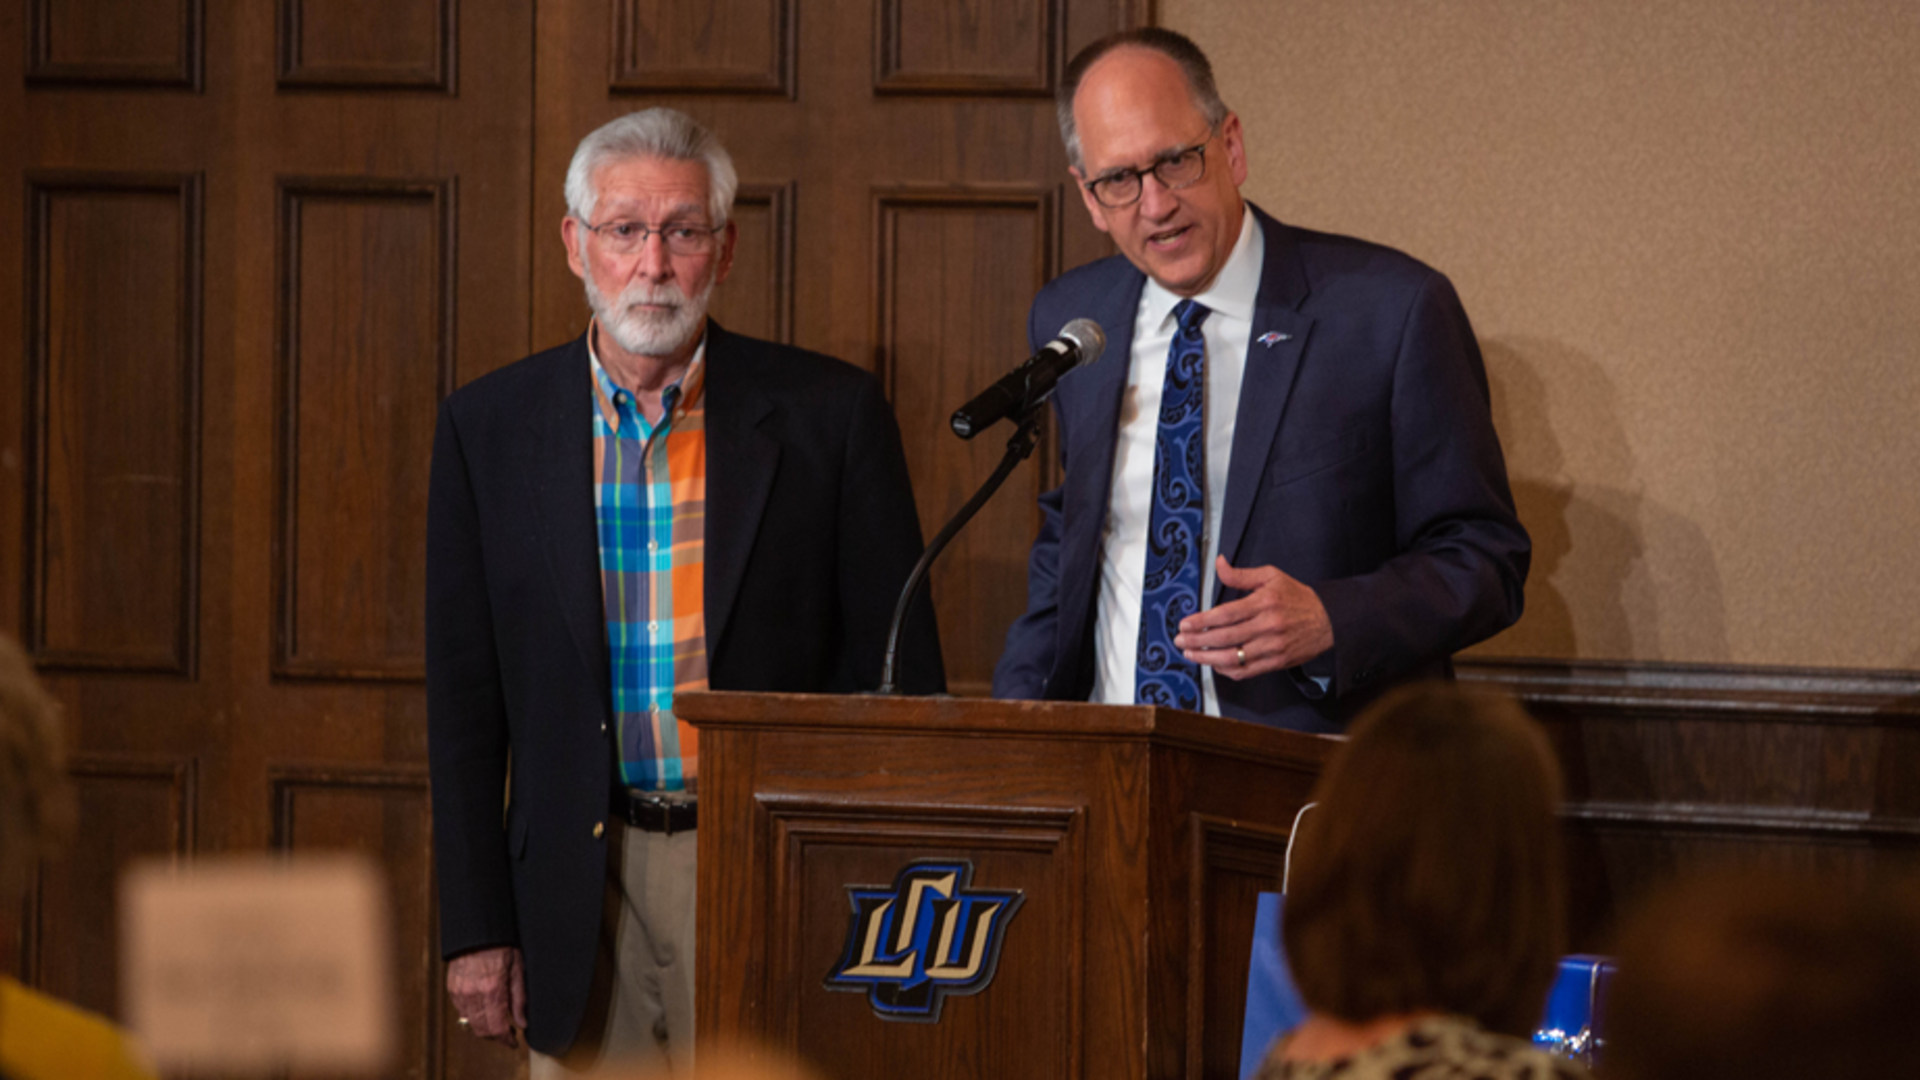 President Perrin and Dr. Don Williams at the LCU podium